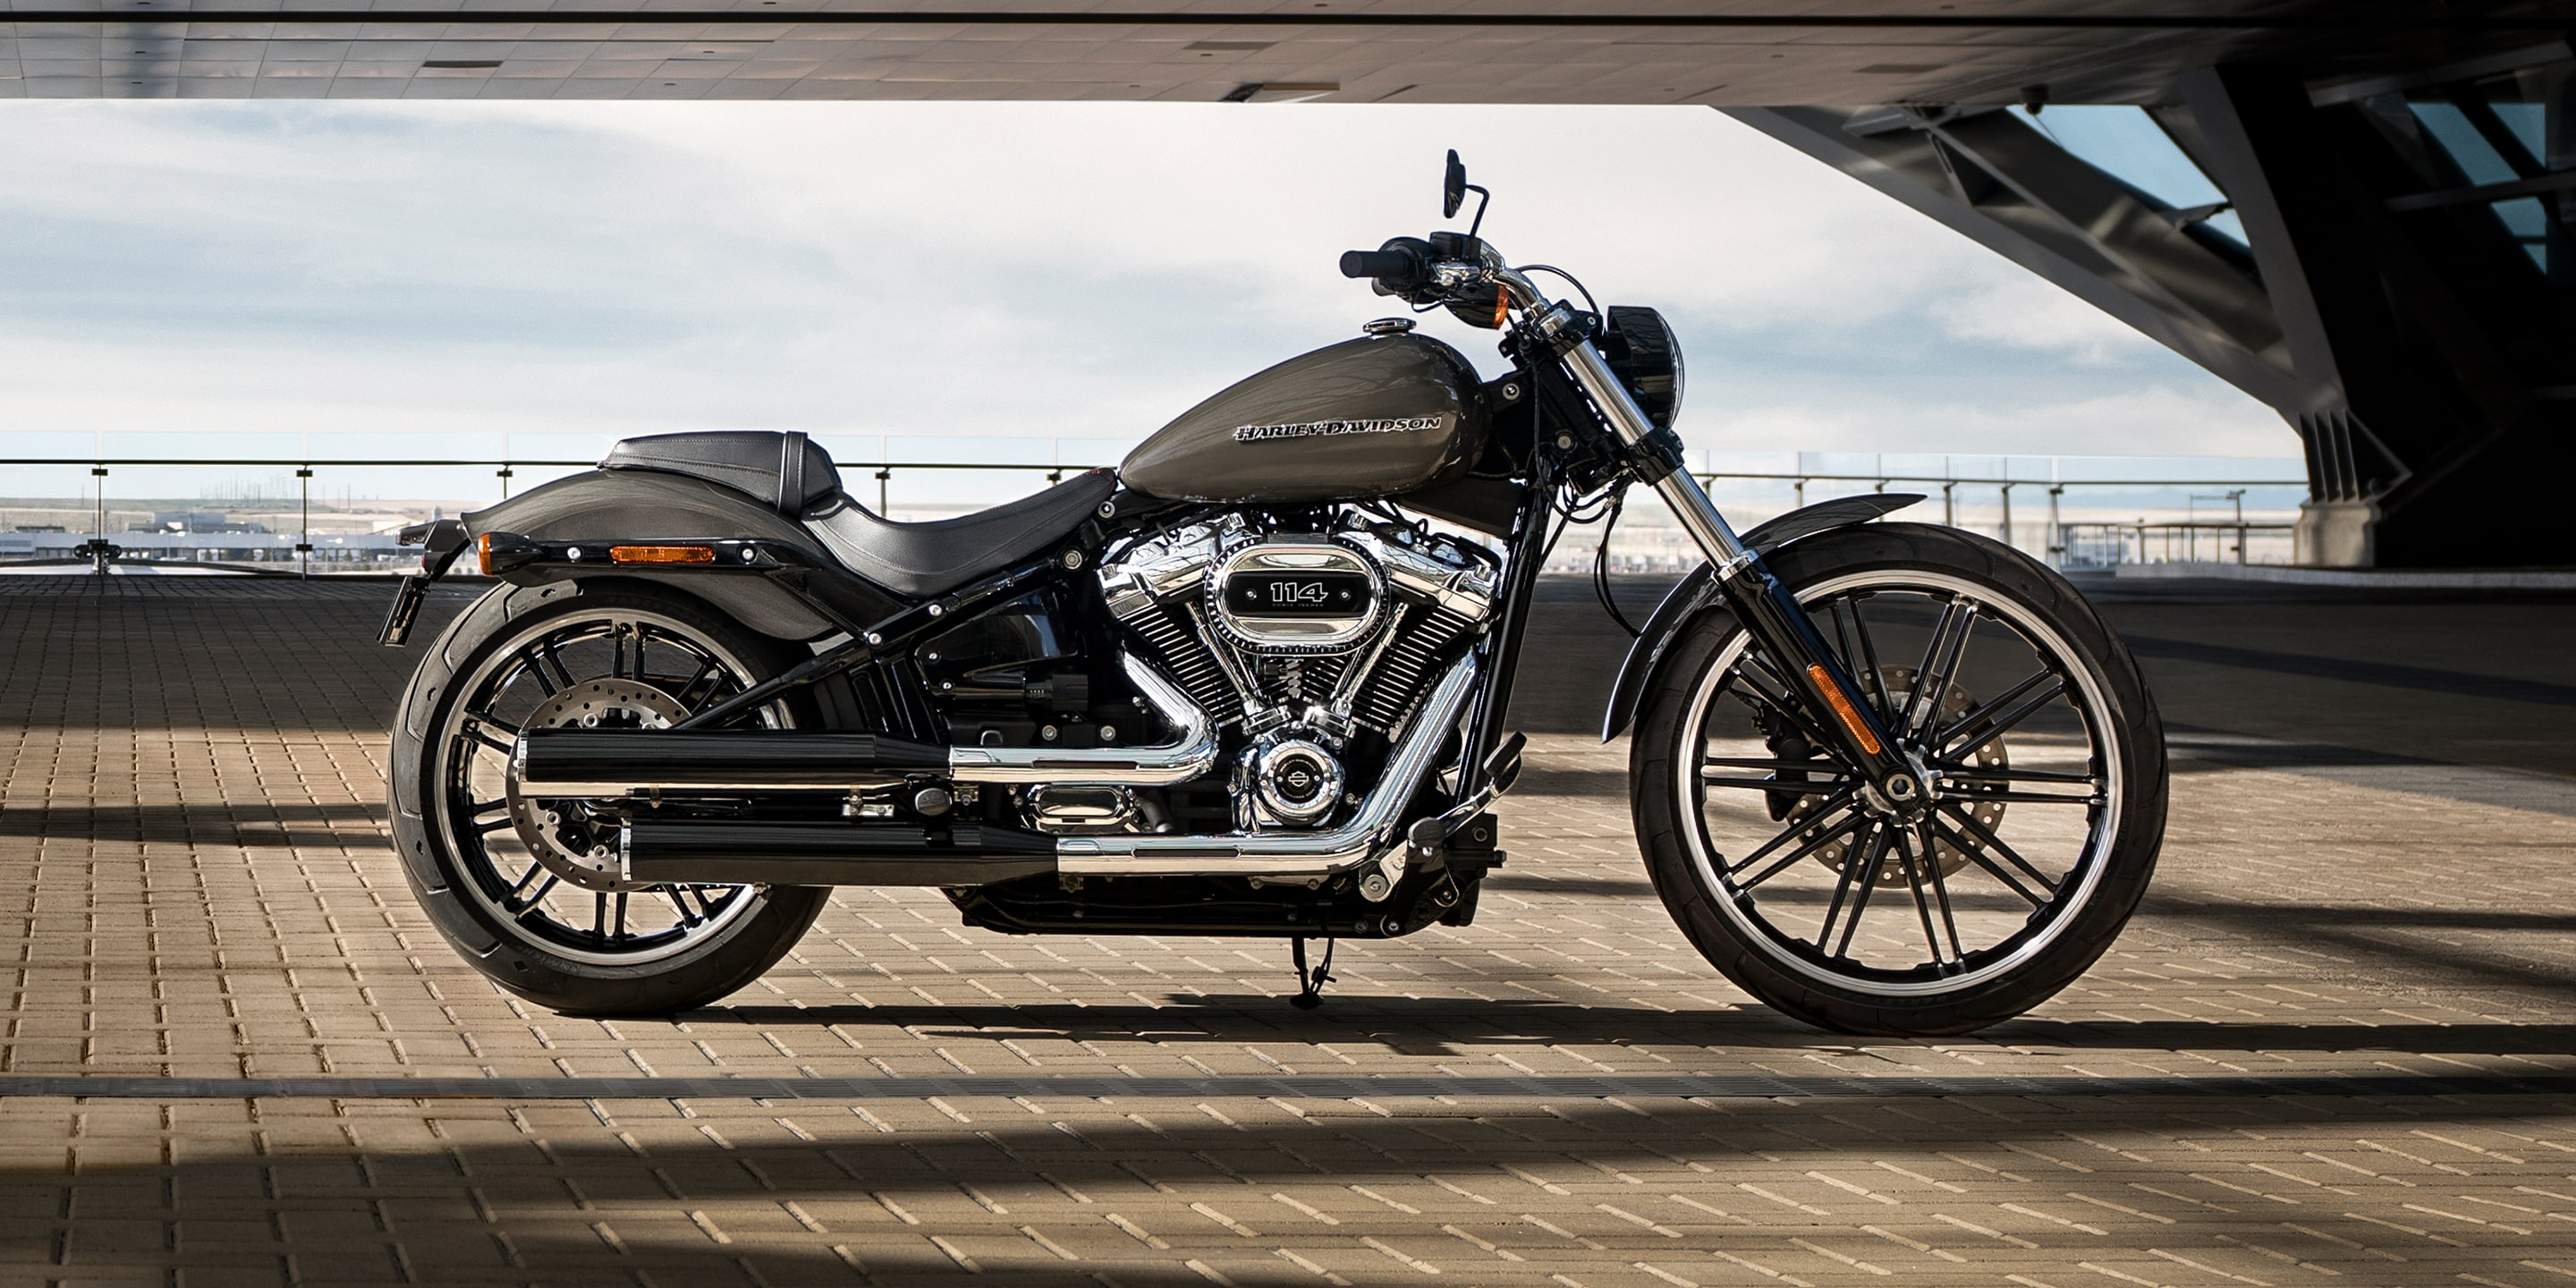 2019 Harley Davidson Fxdr 114 Guide � Total Motorcycle: Bikes To Look Out For In 2019